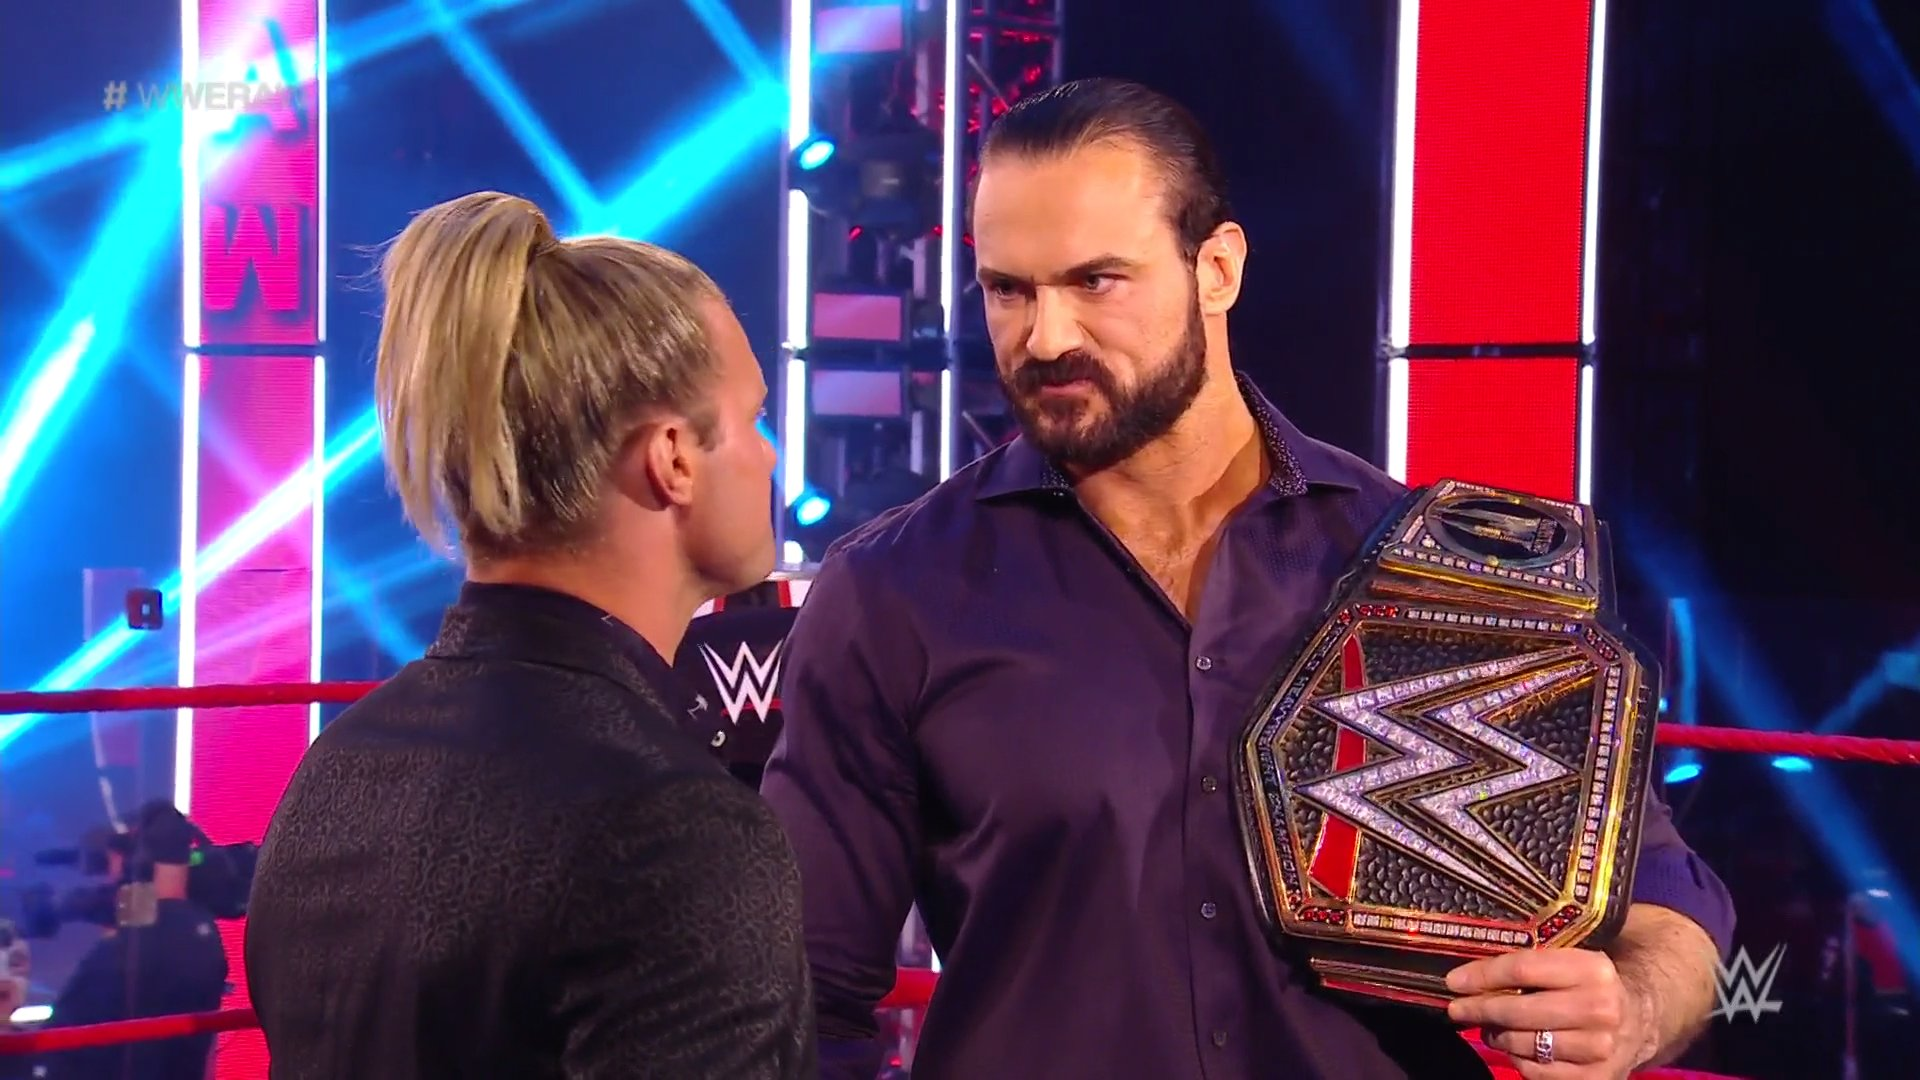 Drew McIntyre Vs Dolph Ziggler WWE Title Match Set For Extreme Rules 2020 2